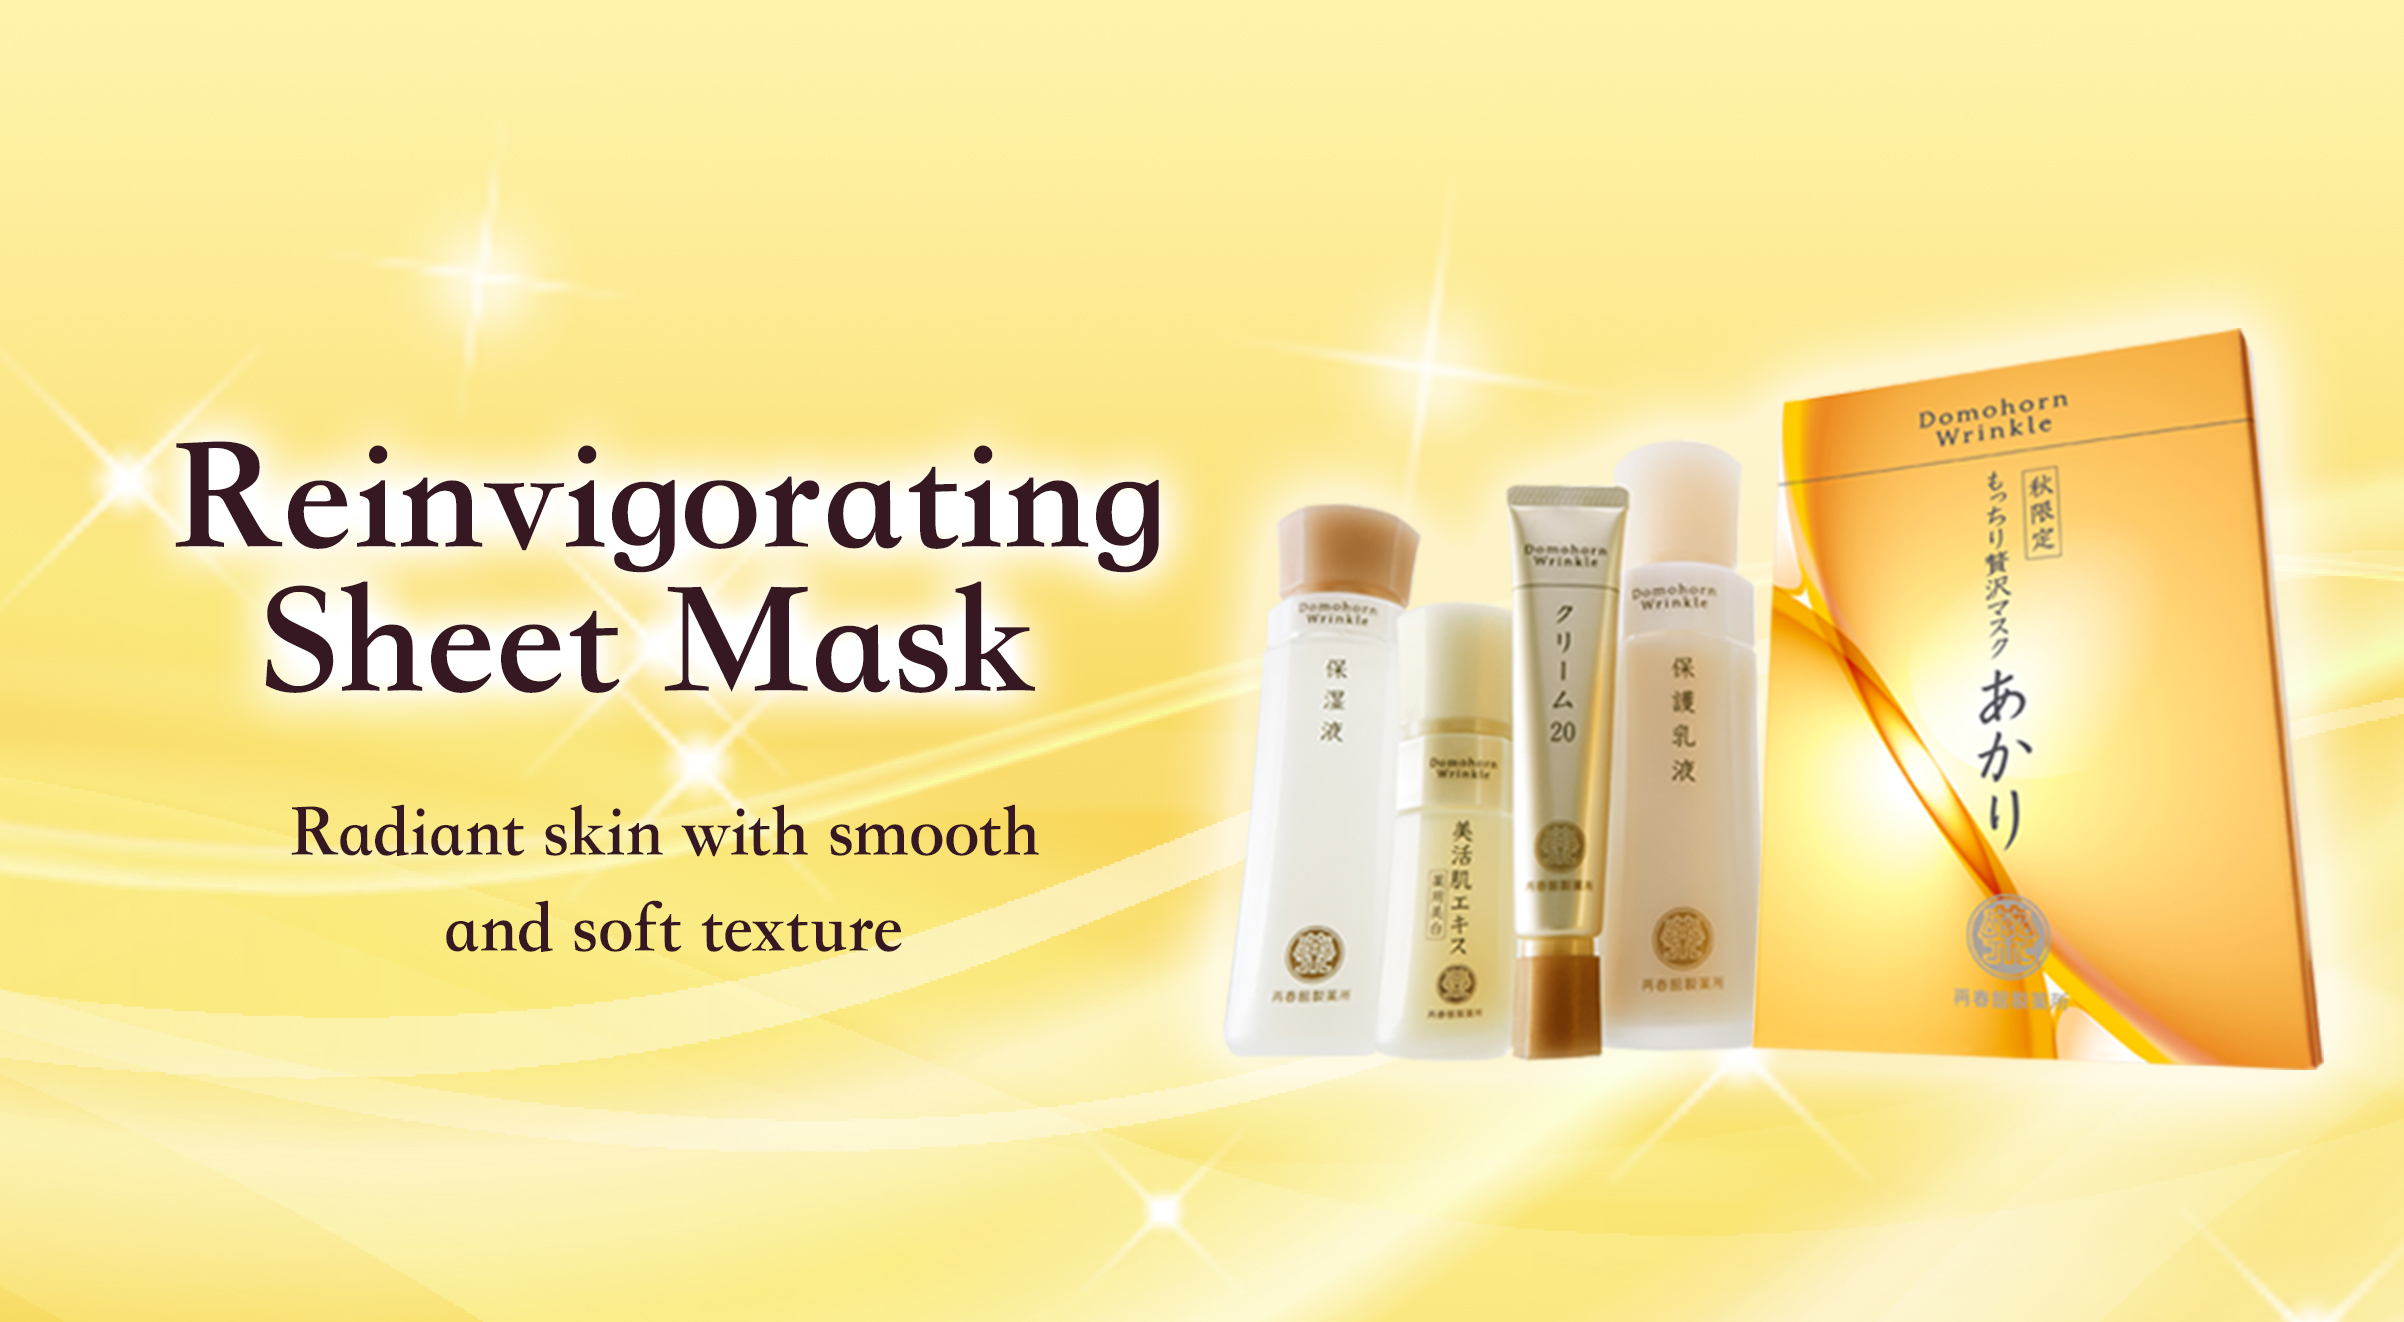 Reinvigorating Sheet Mask Radiant skin with smooth and soft texture